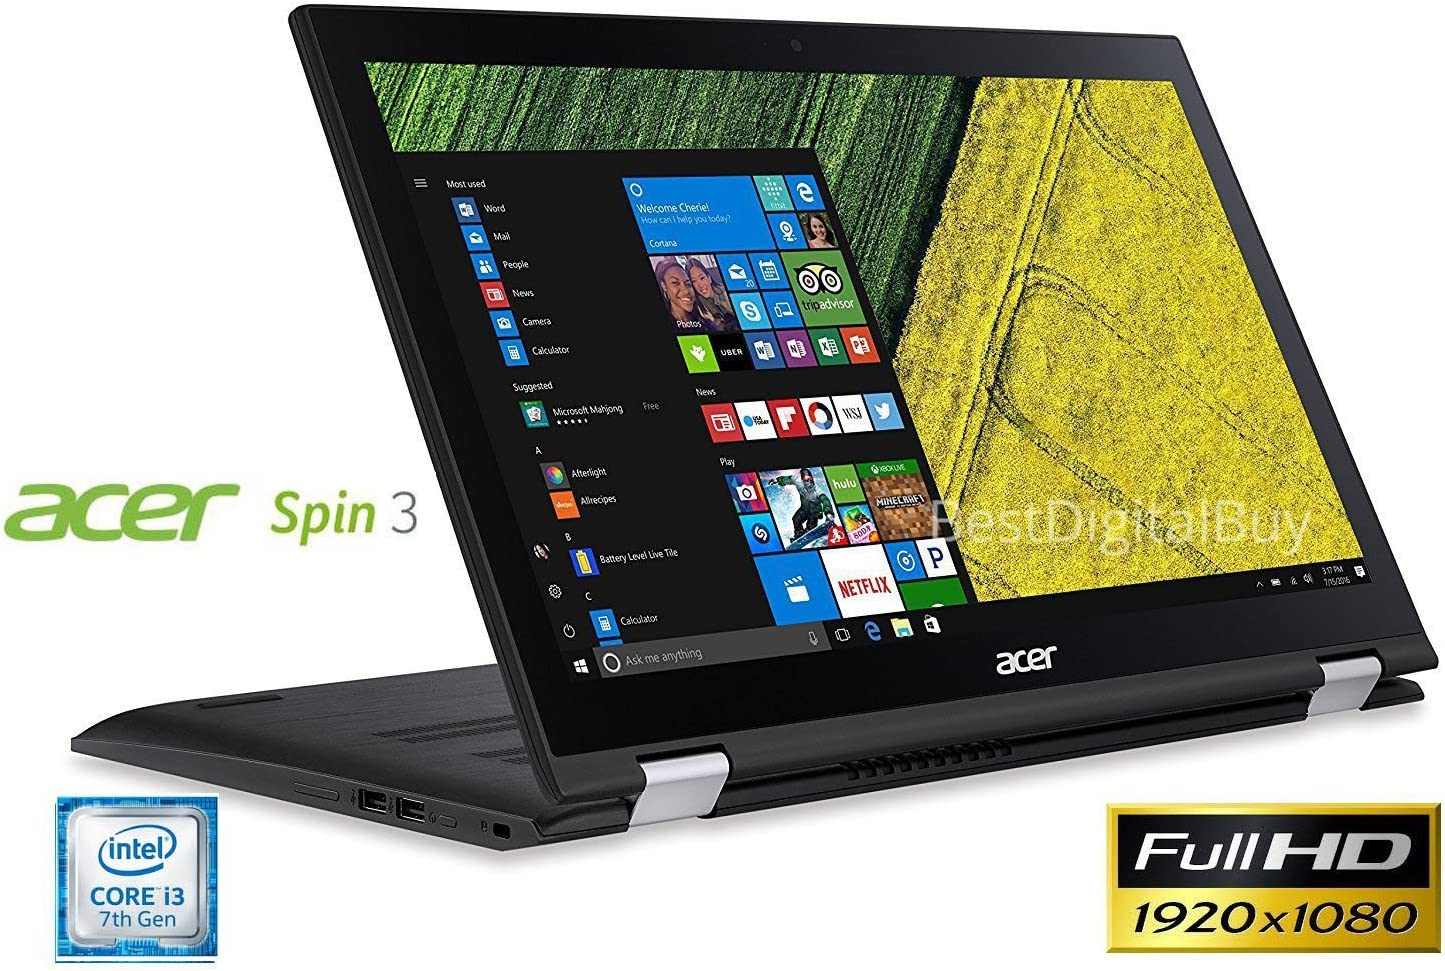 Acer Spin 3 SP315-51 Touch 2-1 Laptop 7th Gen Intel Core i3 up to 2.4GHz 6GB 1TB 15.6in Full HD LED Cam HDMI (Renewed)